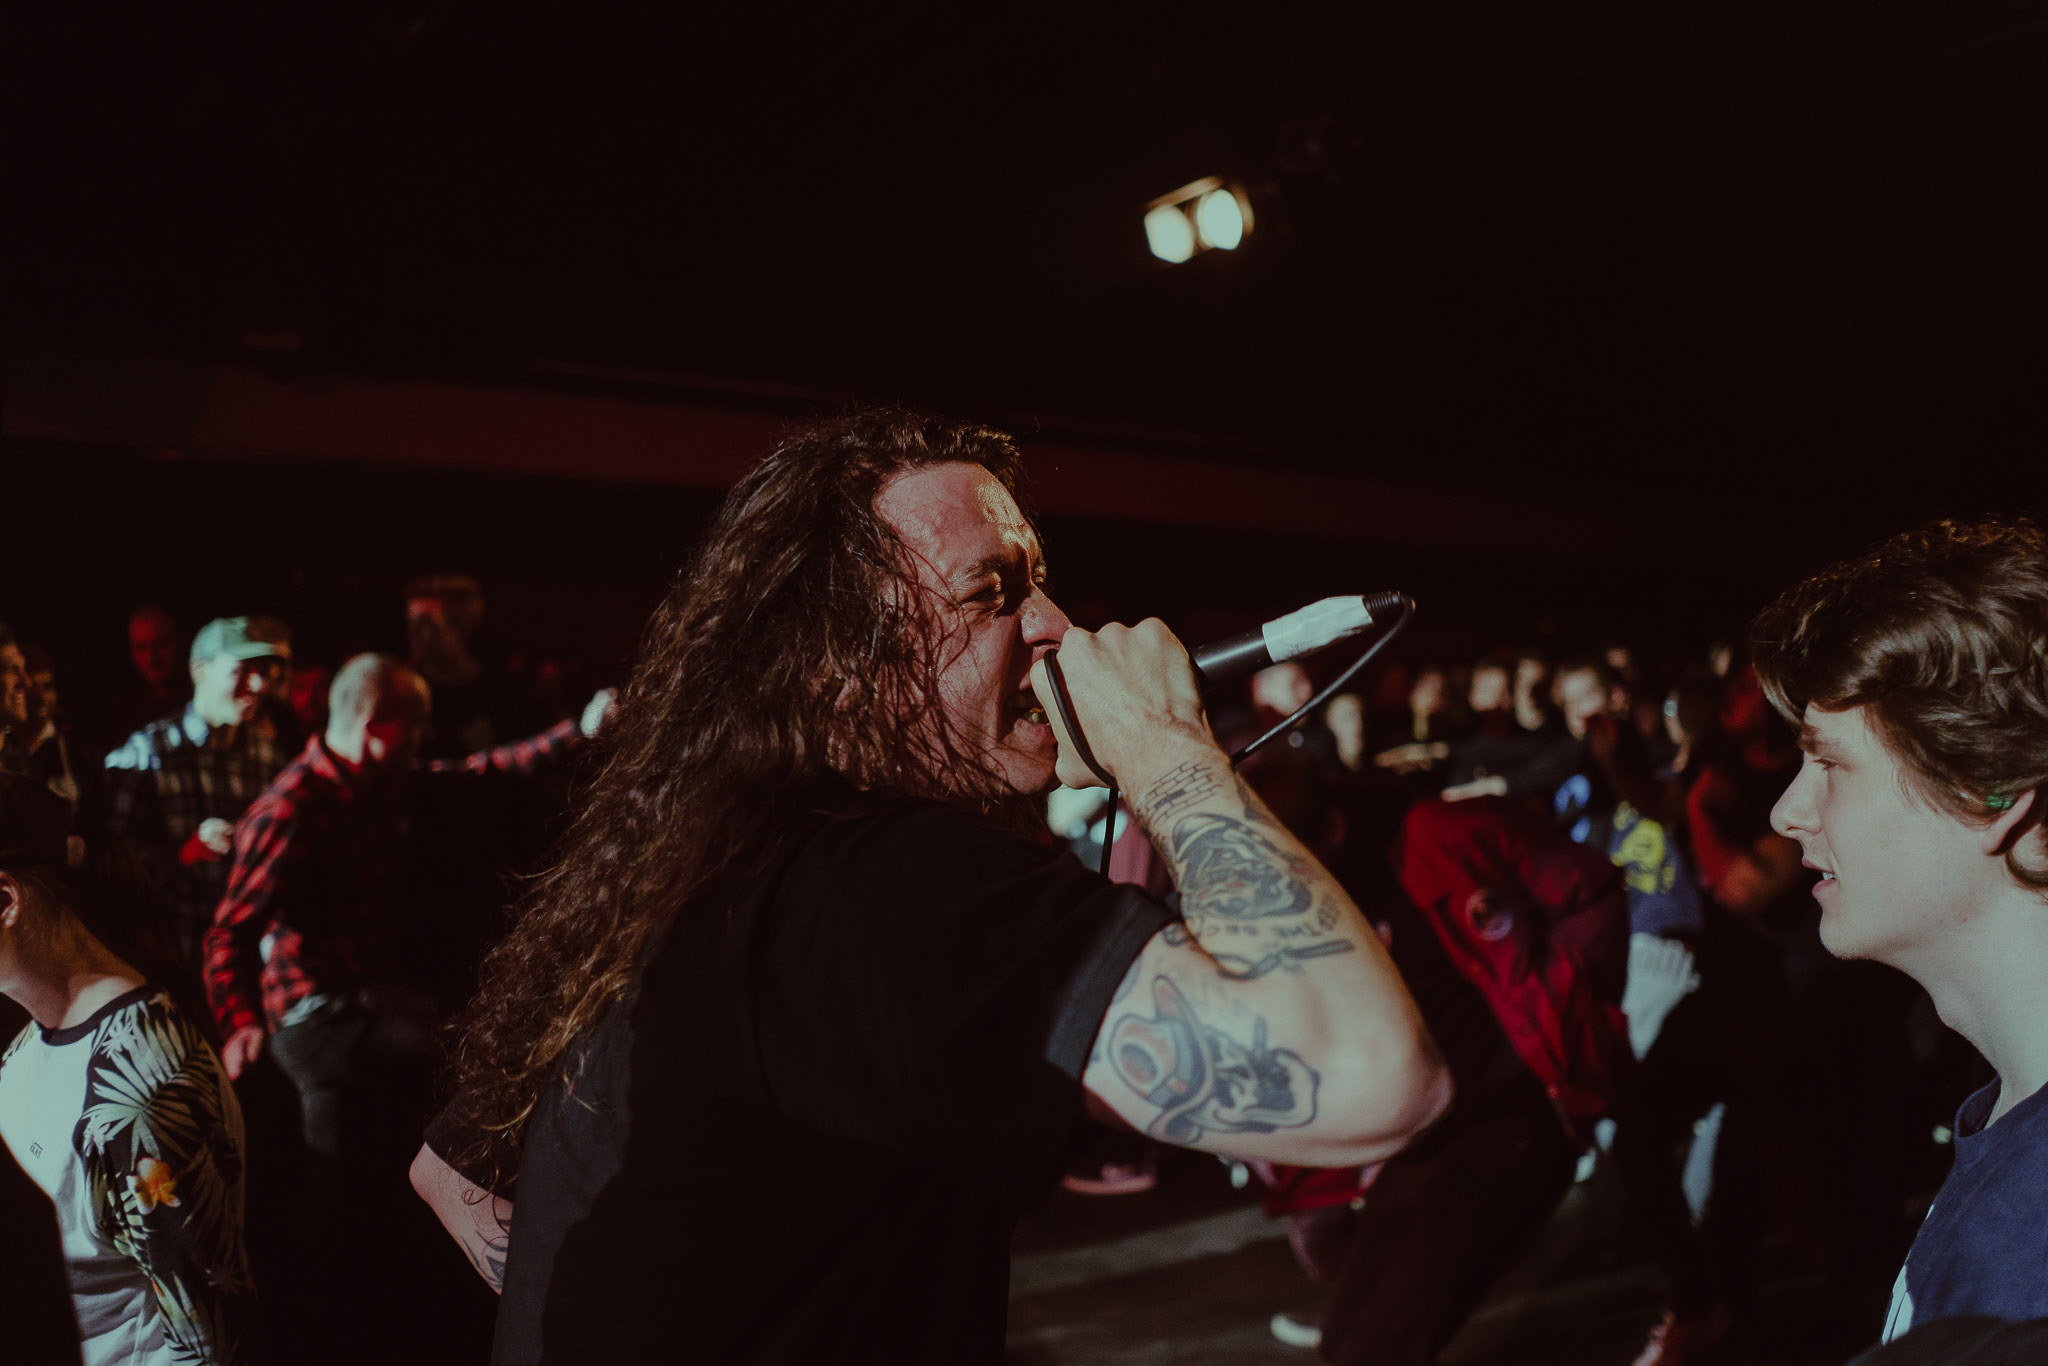 TRASH TALK_20180323_00026_@arnecrdnls.jpg